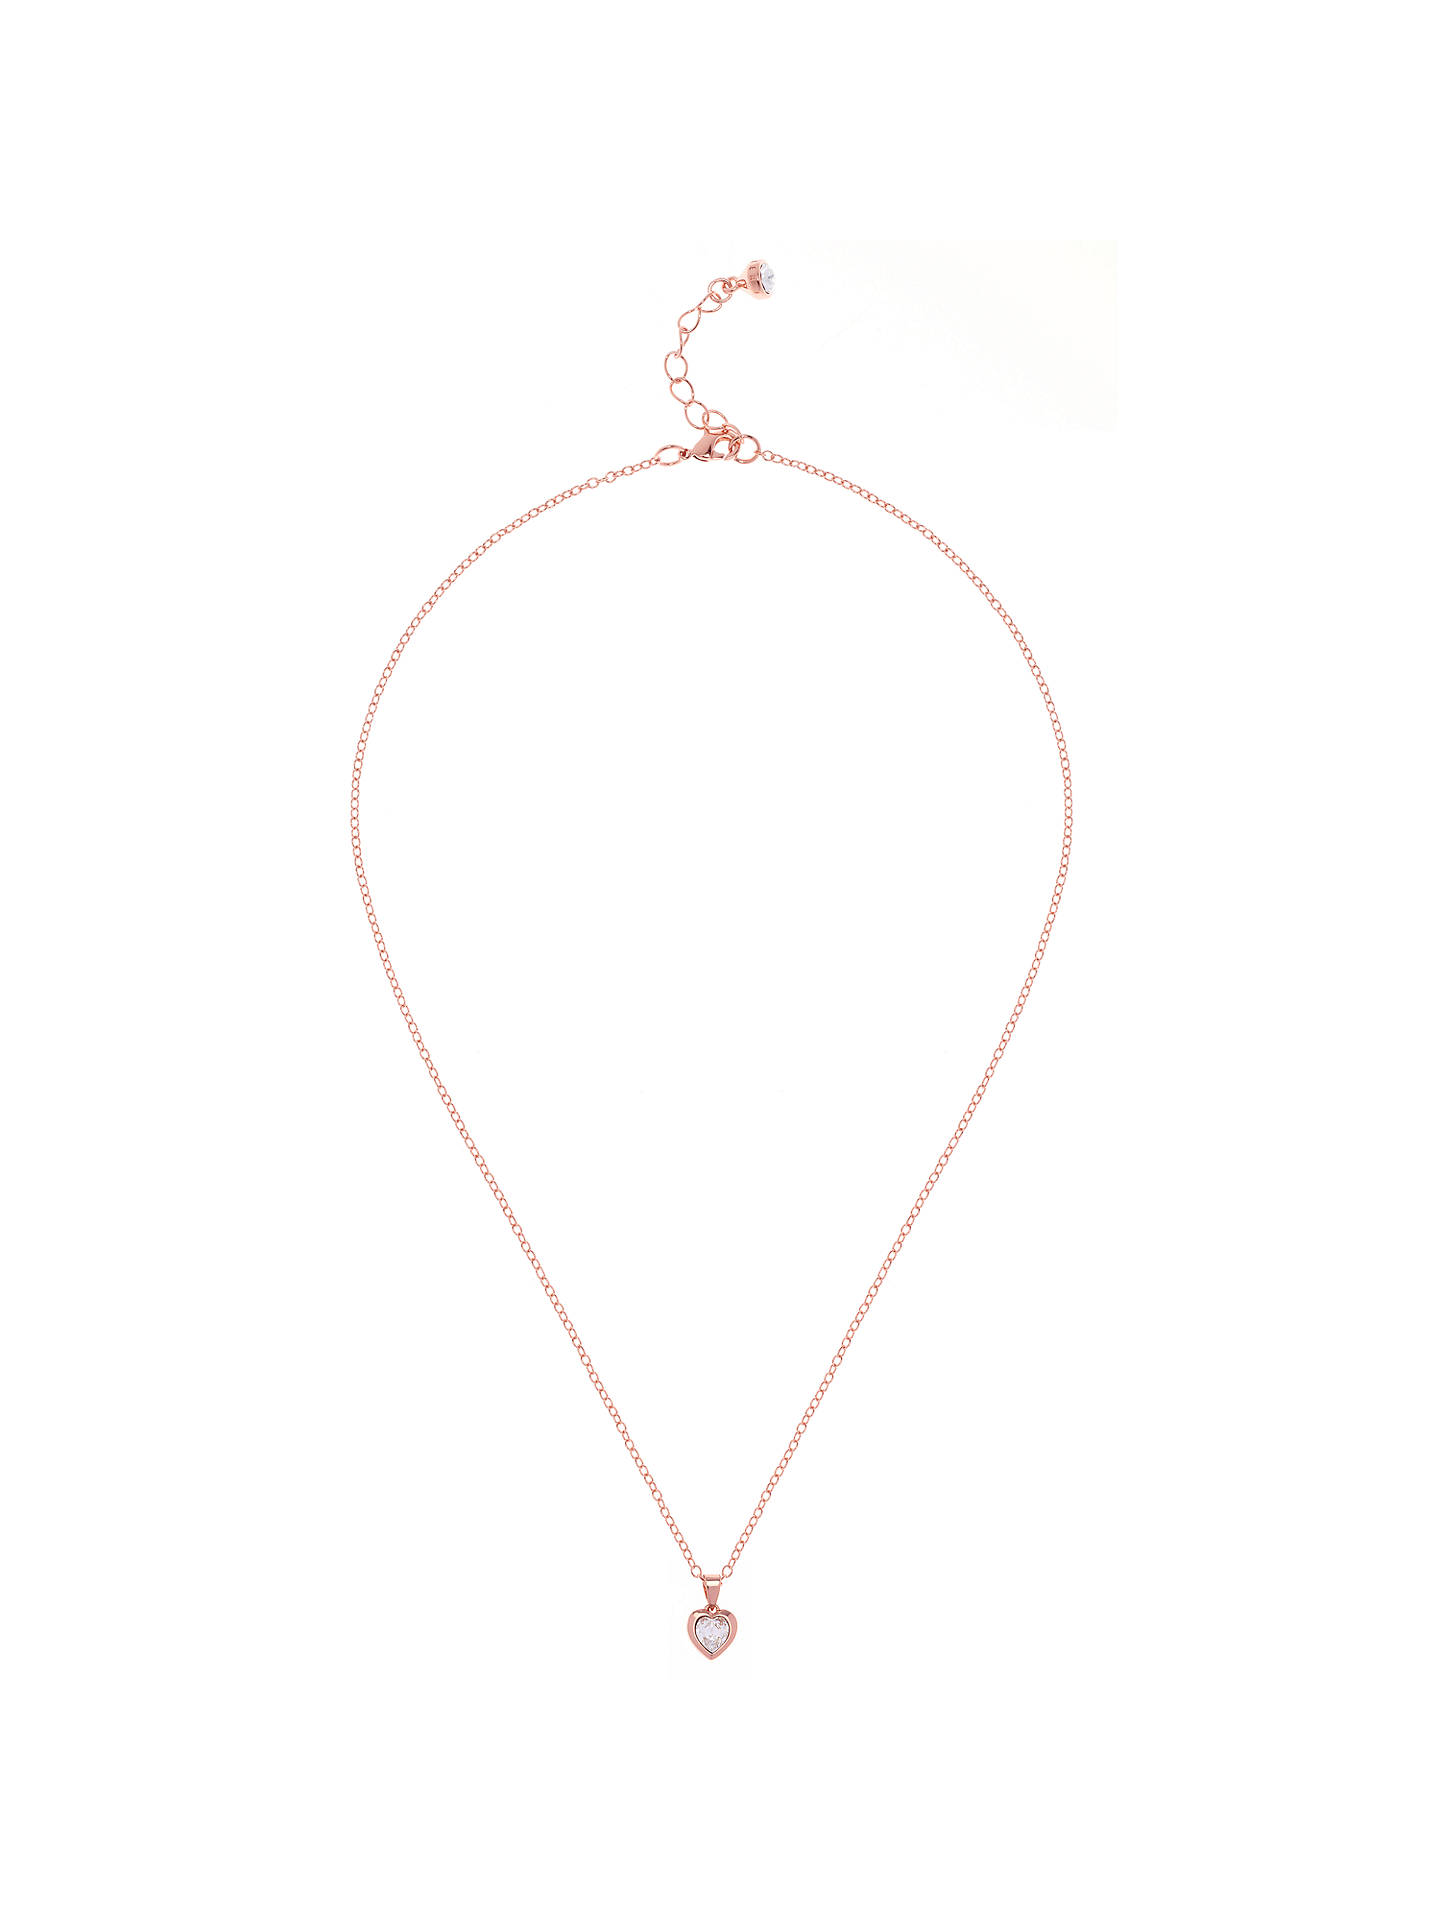 BuyTed Baker Hannela Swarovski Crystal Heart Necklace, Rose Gold/Clear Online at johnlewis.com